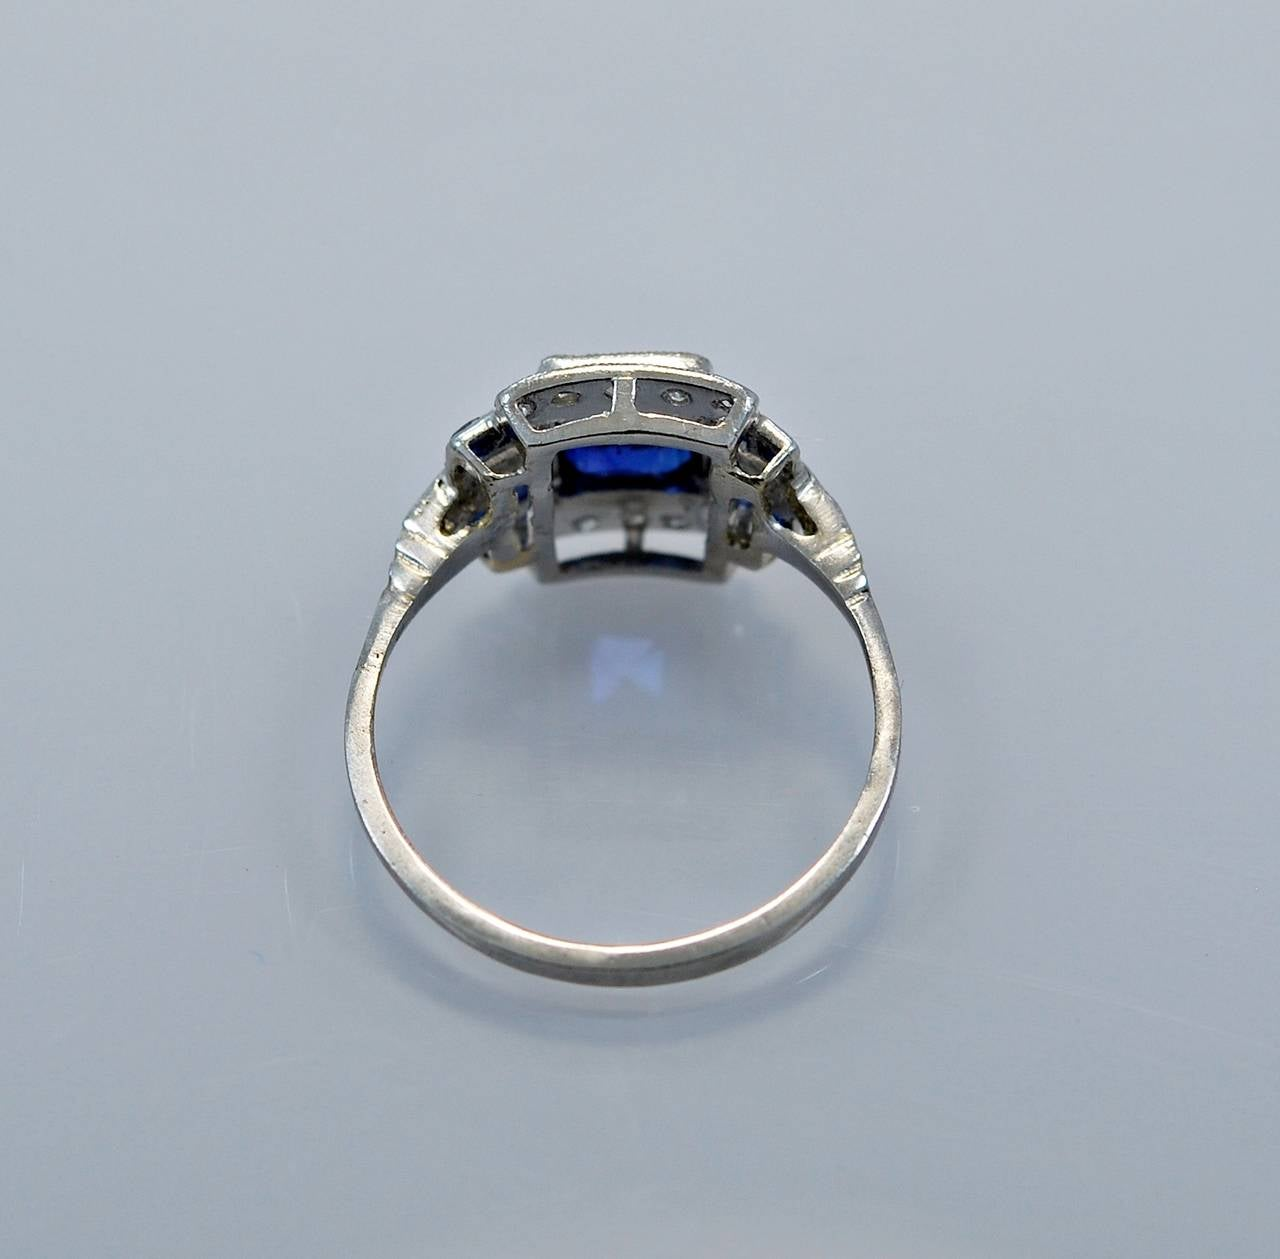 Art Deco Elegant 1.10 Carat Natural Sapphire Diamond Engagement Ring In Excellent Condition For Sale In Tampa, FL